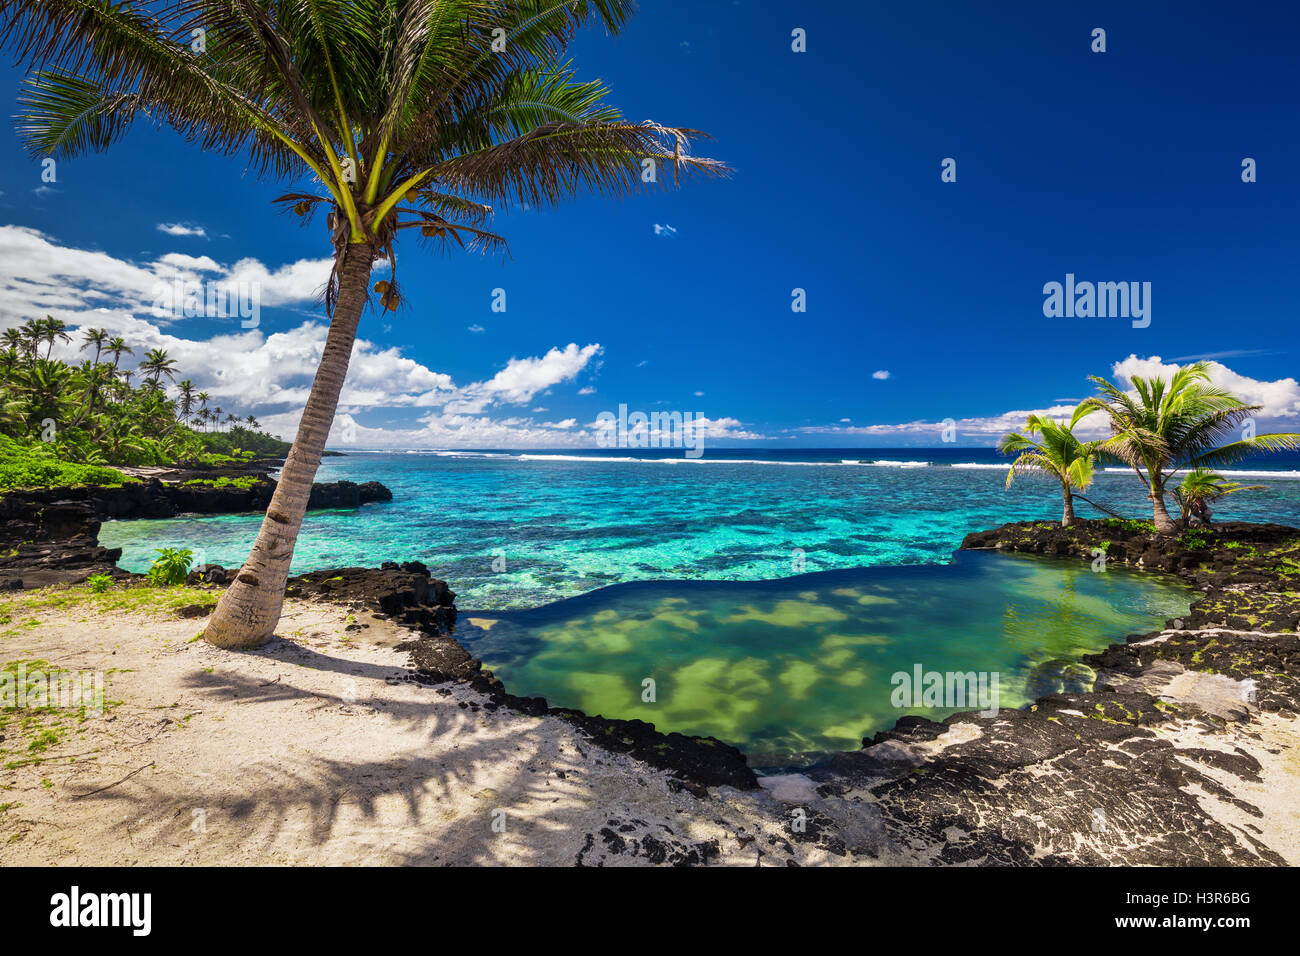 Natural infinity rock pool with palm trees over tropical ocean lagoon - Stock Image